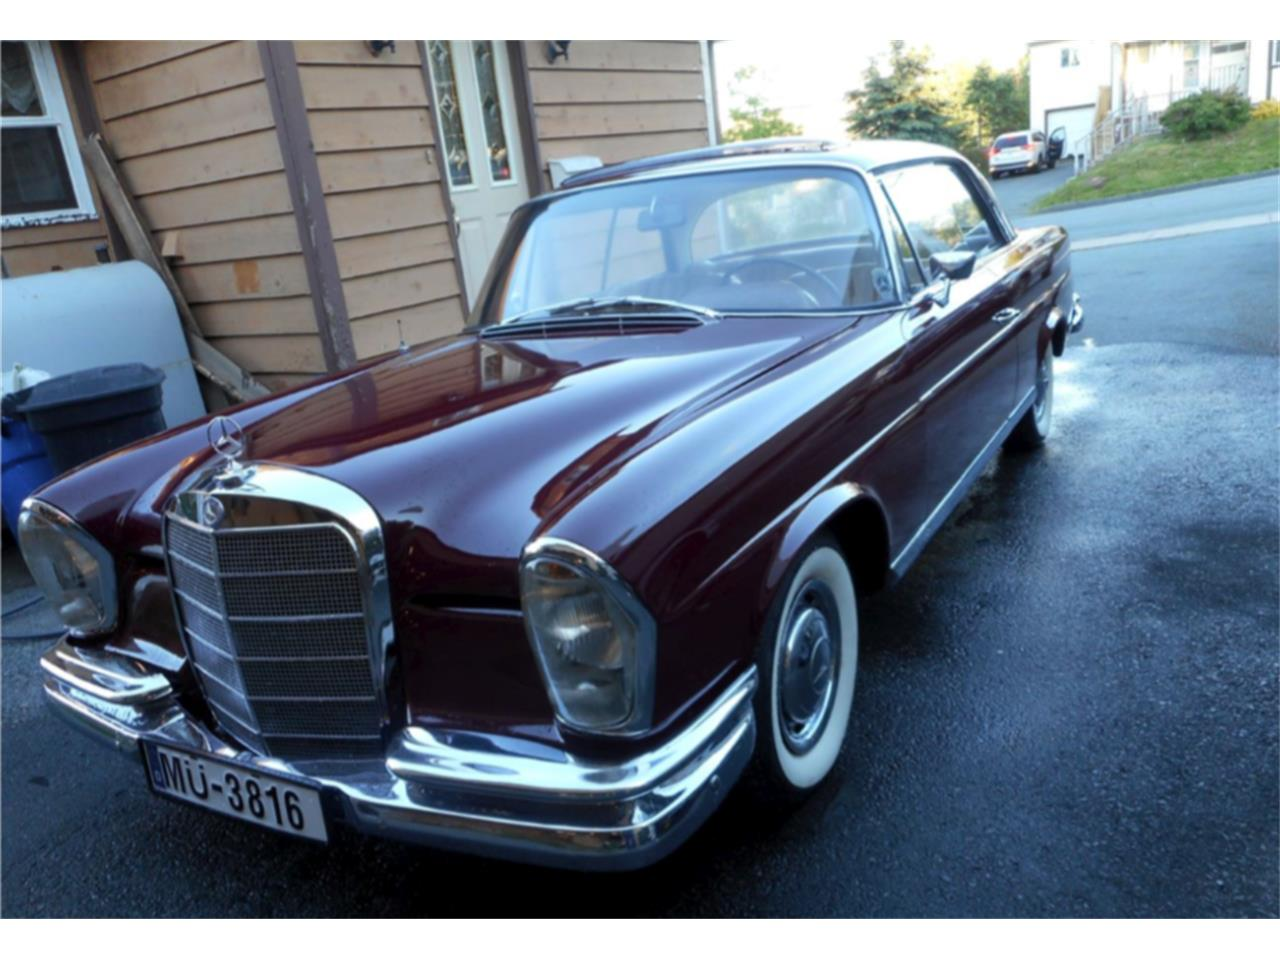 Large Picture of '61 Mercedes-Benz 220SEb located in Halifax Nova Scotia - $73,000.00 Offered by a Private Seller - N9W8